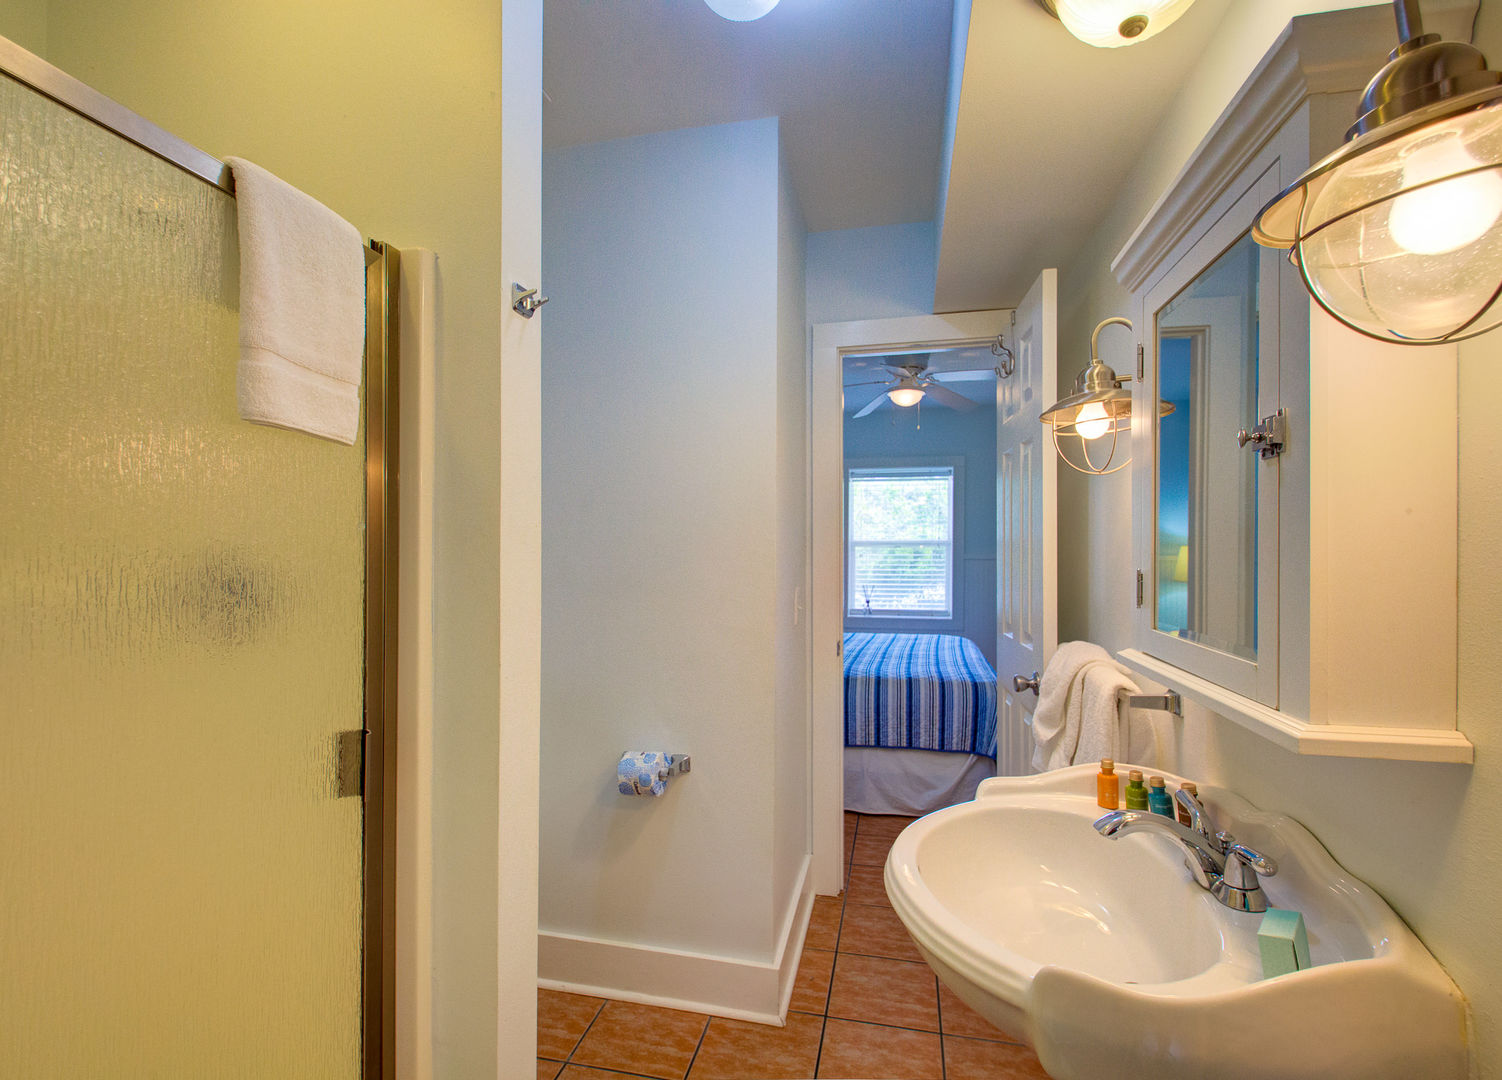 Jack N Jill Bath attached to bedrooms #1 and #2.